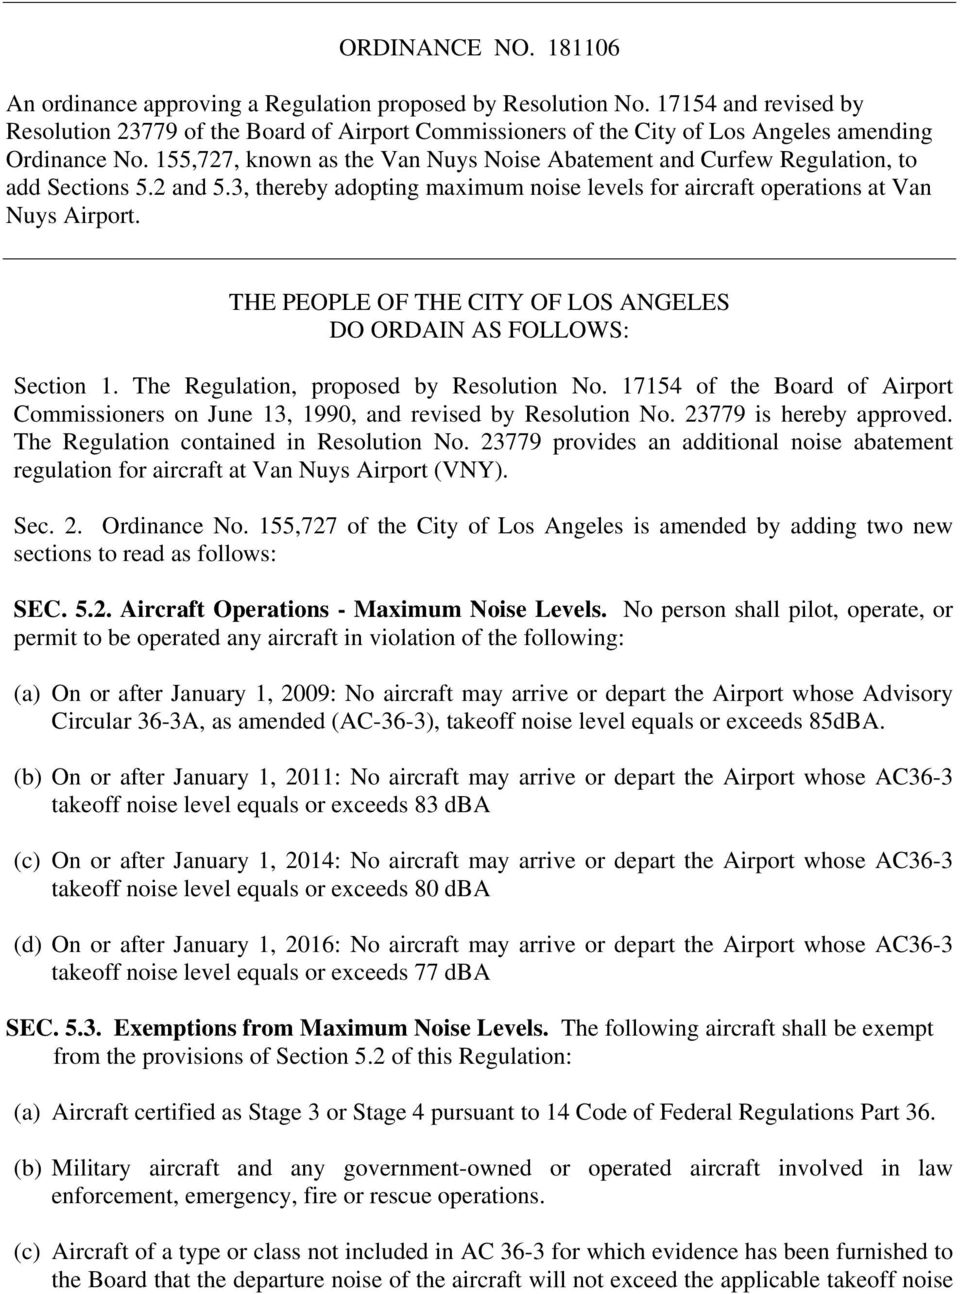 155,727, known as the Van Nuys Noise Abatement and Curfew Regulation, to add Sections 5.2 and 5.3, thereby adopting maximum noise levels for aircraft operations at Van Nuys Airport.